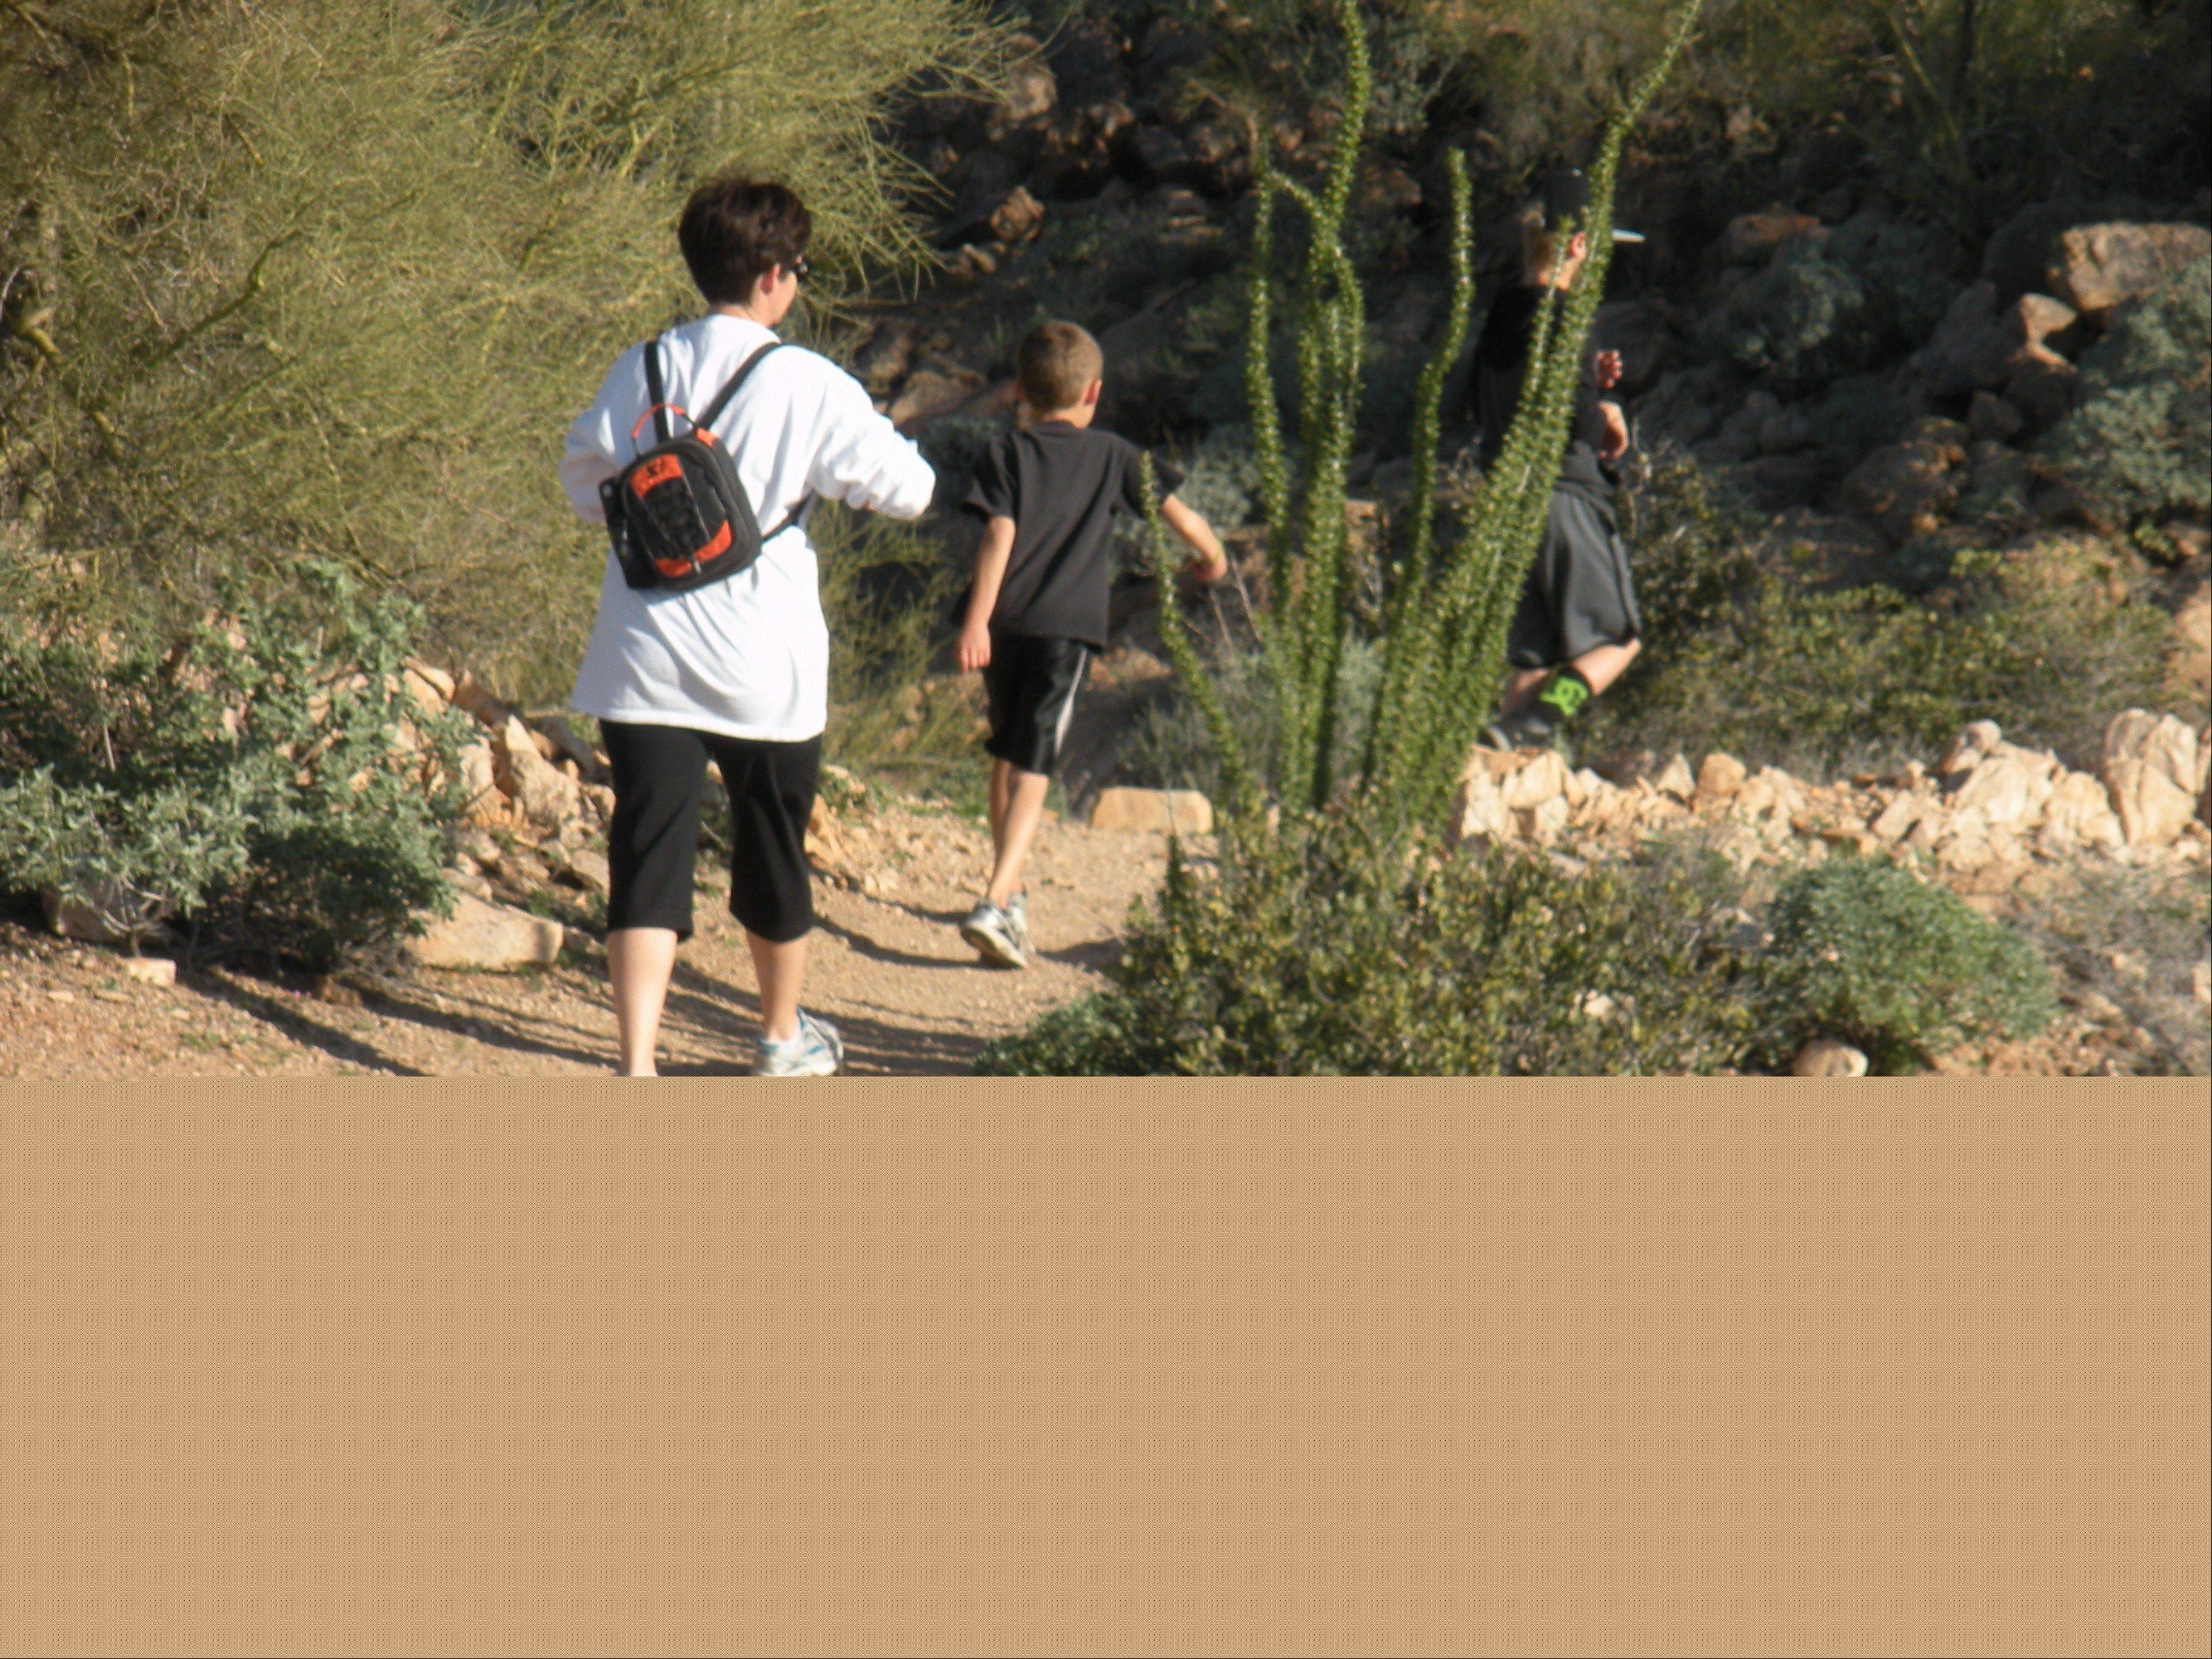 Usery Park in the center of Mesa offers hiking trails in the Sonoran Desert.